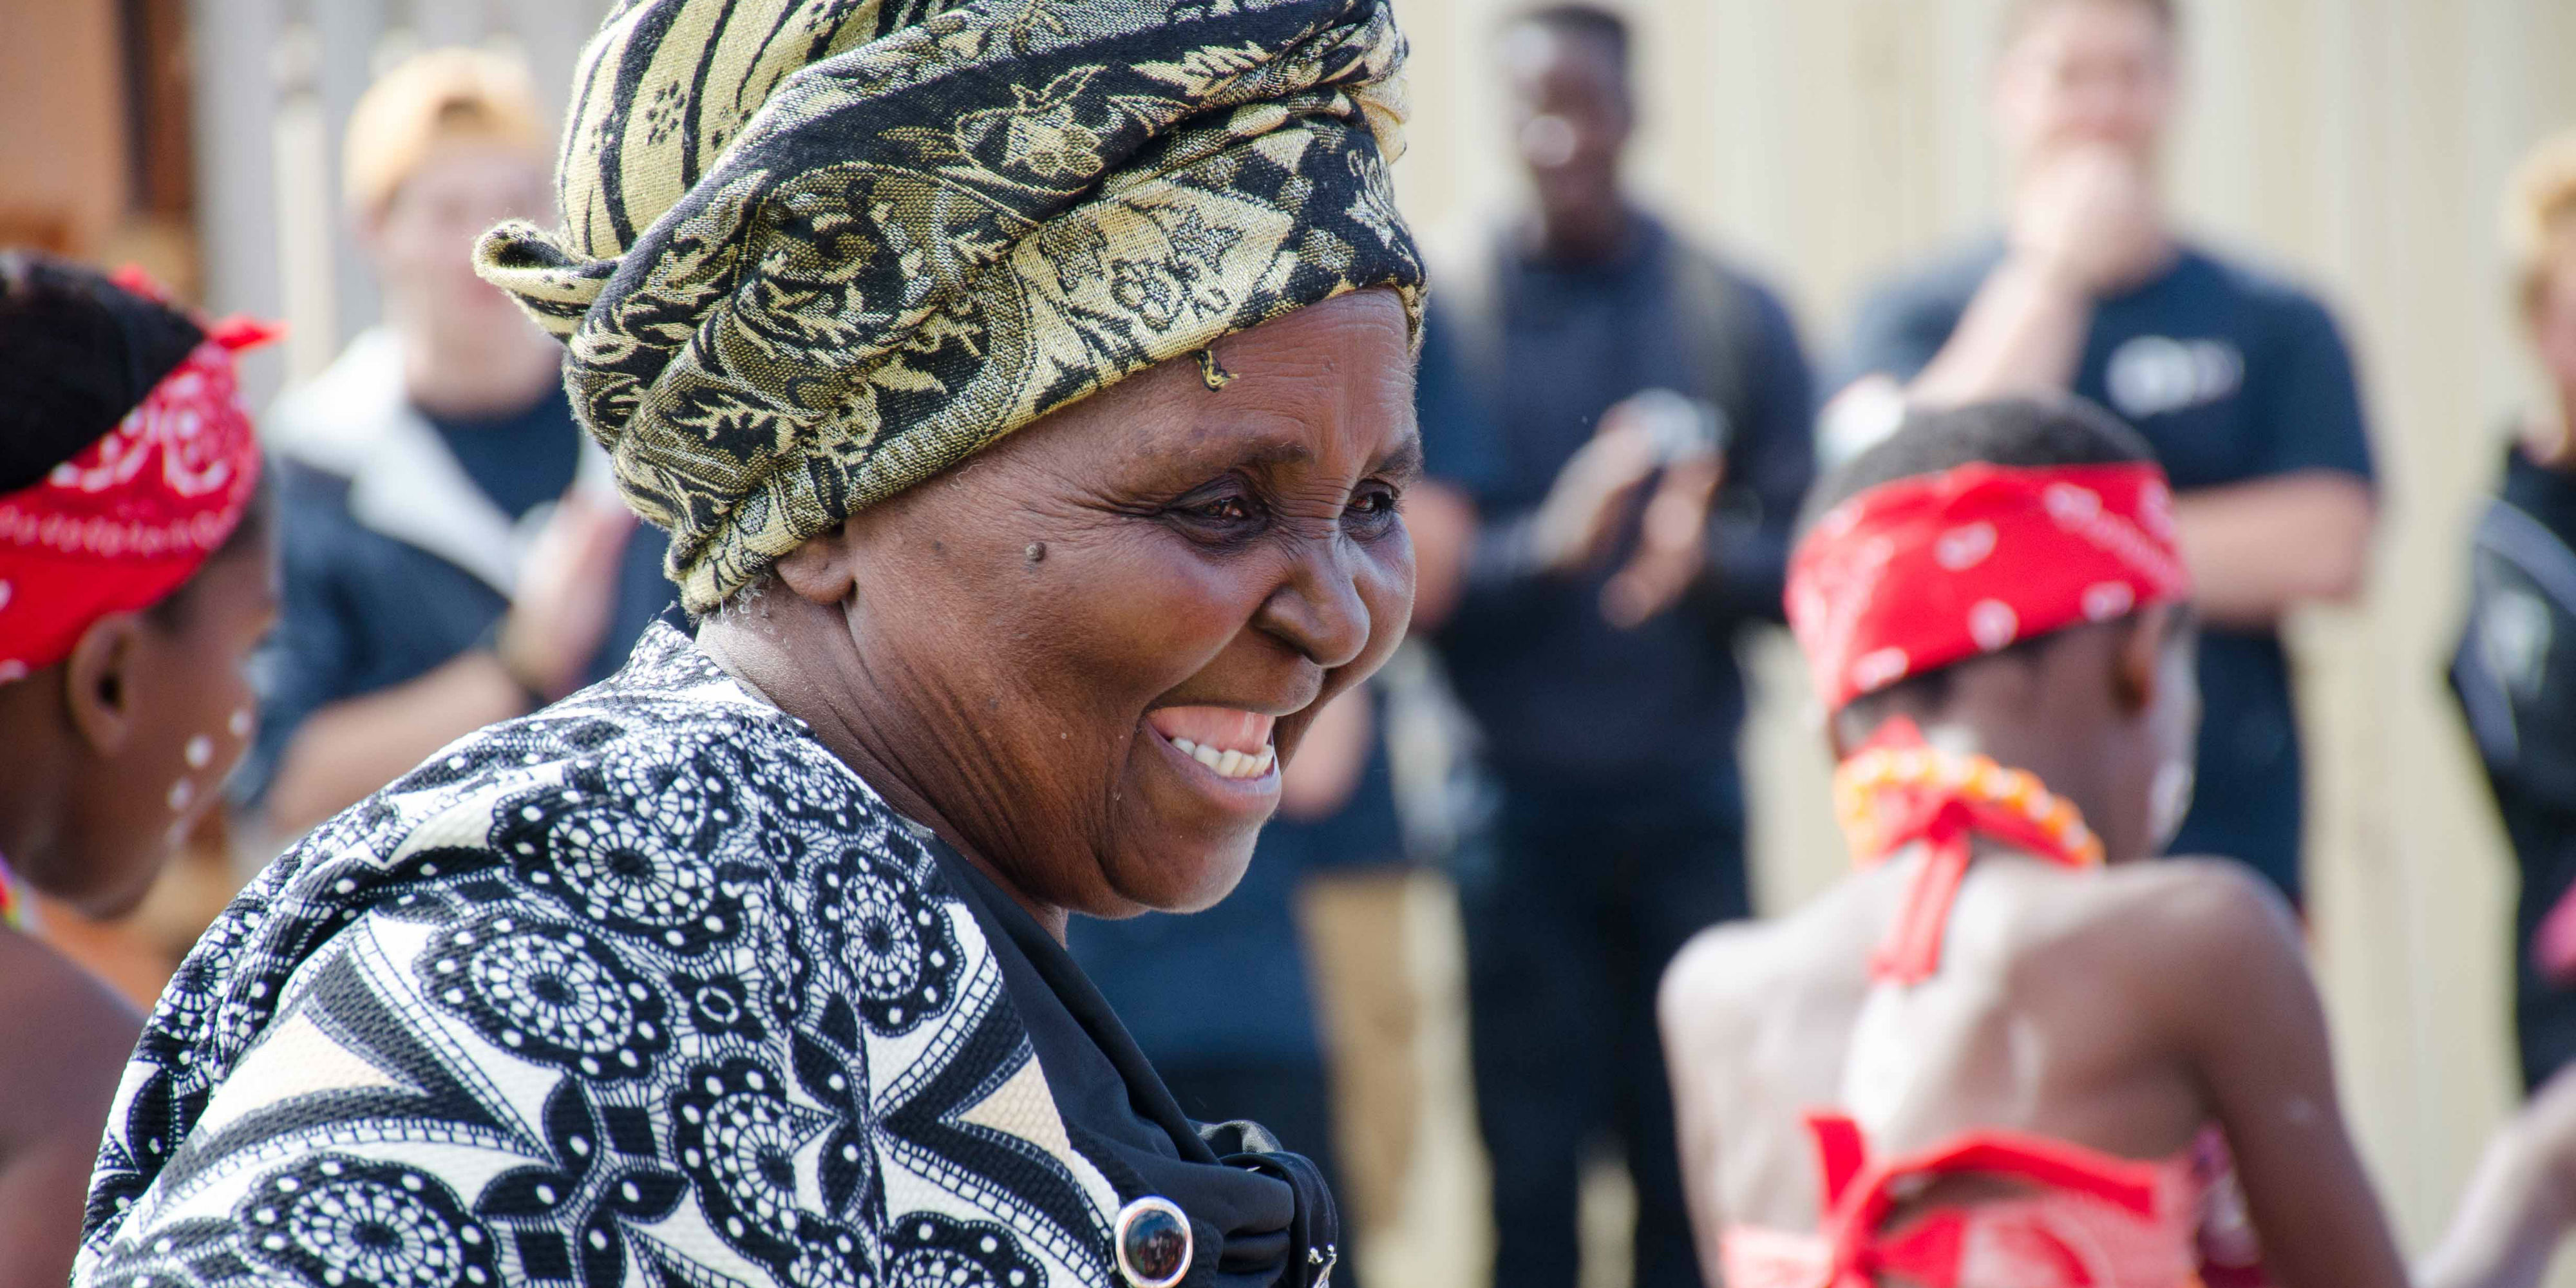 A women celebrates in Cape Town, South Africa. As a volunteer in South Africa, you will work with local women on activities for women's empowerment.